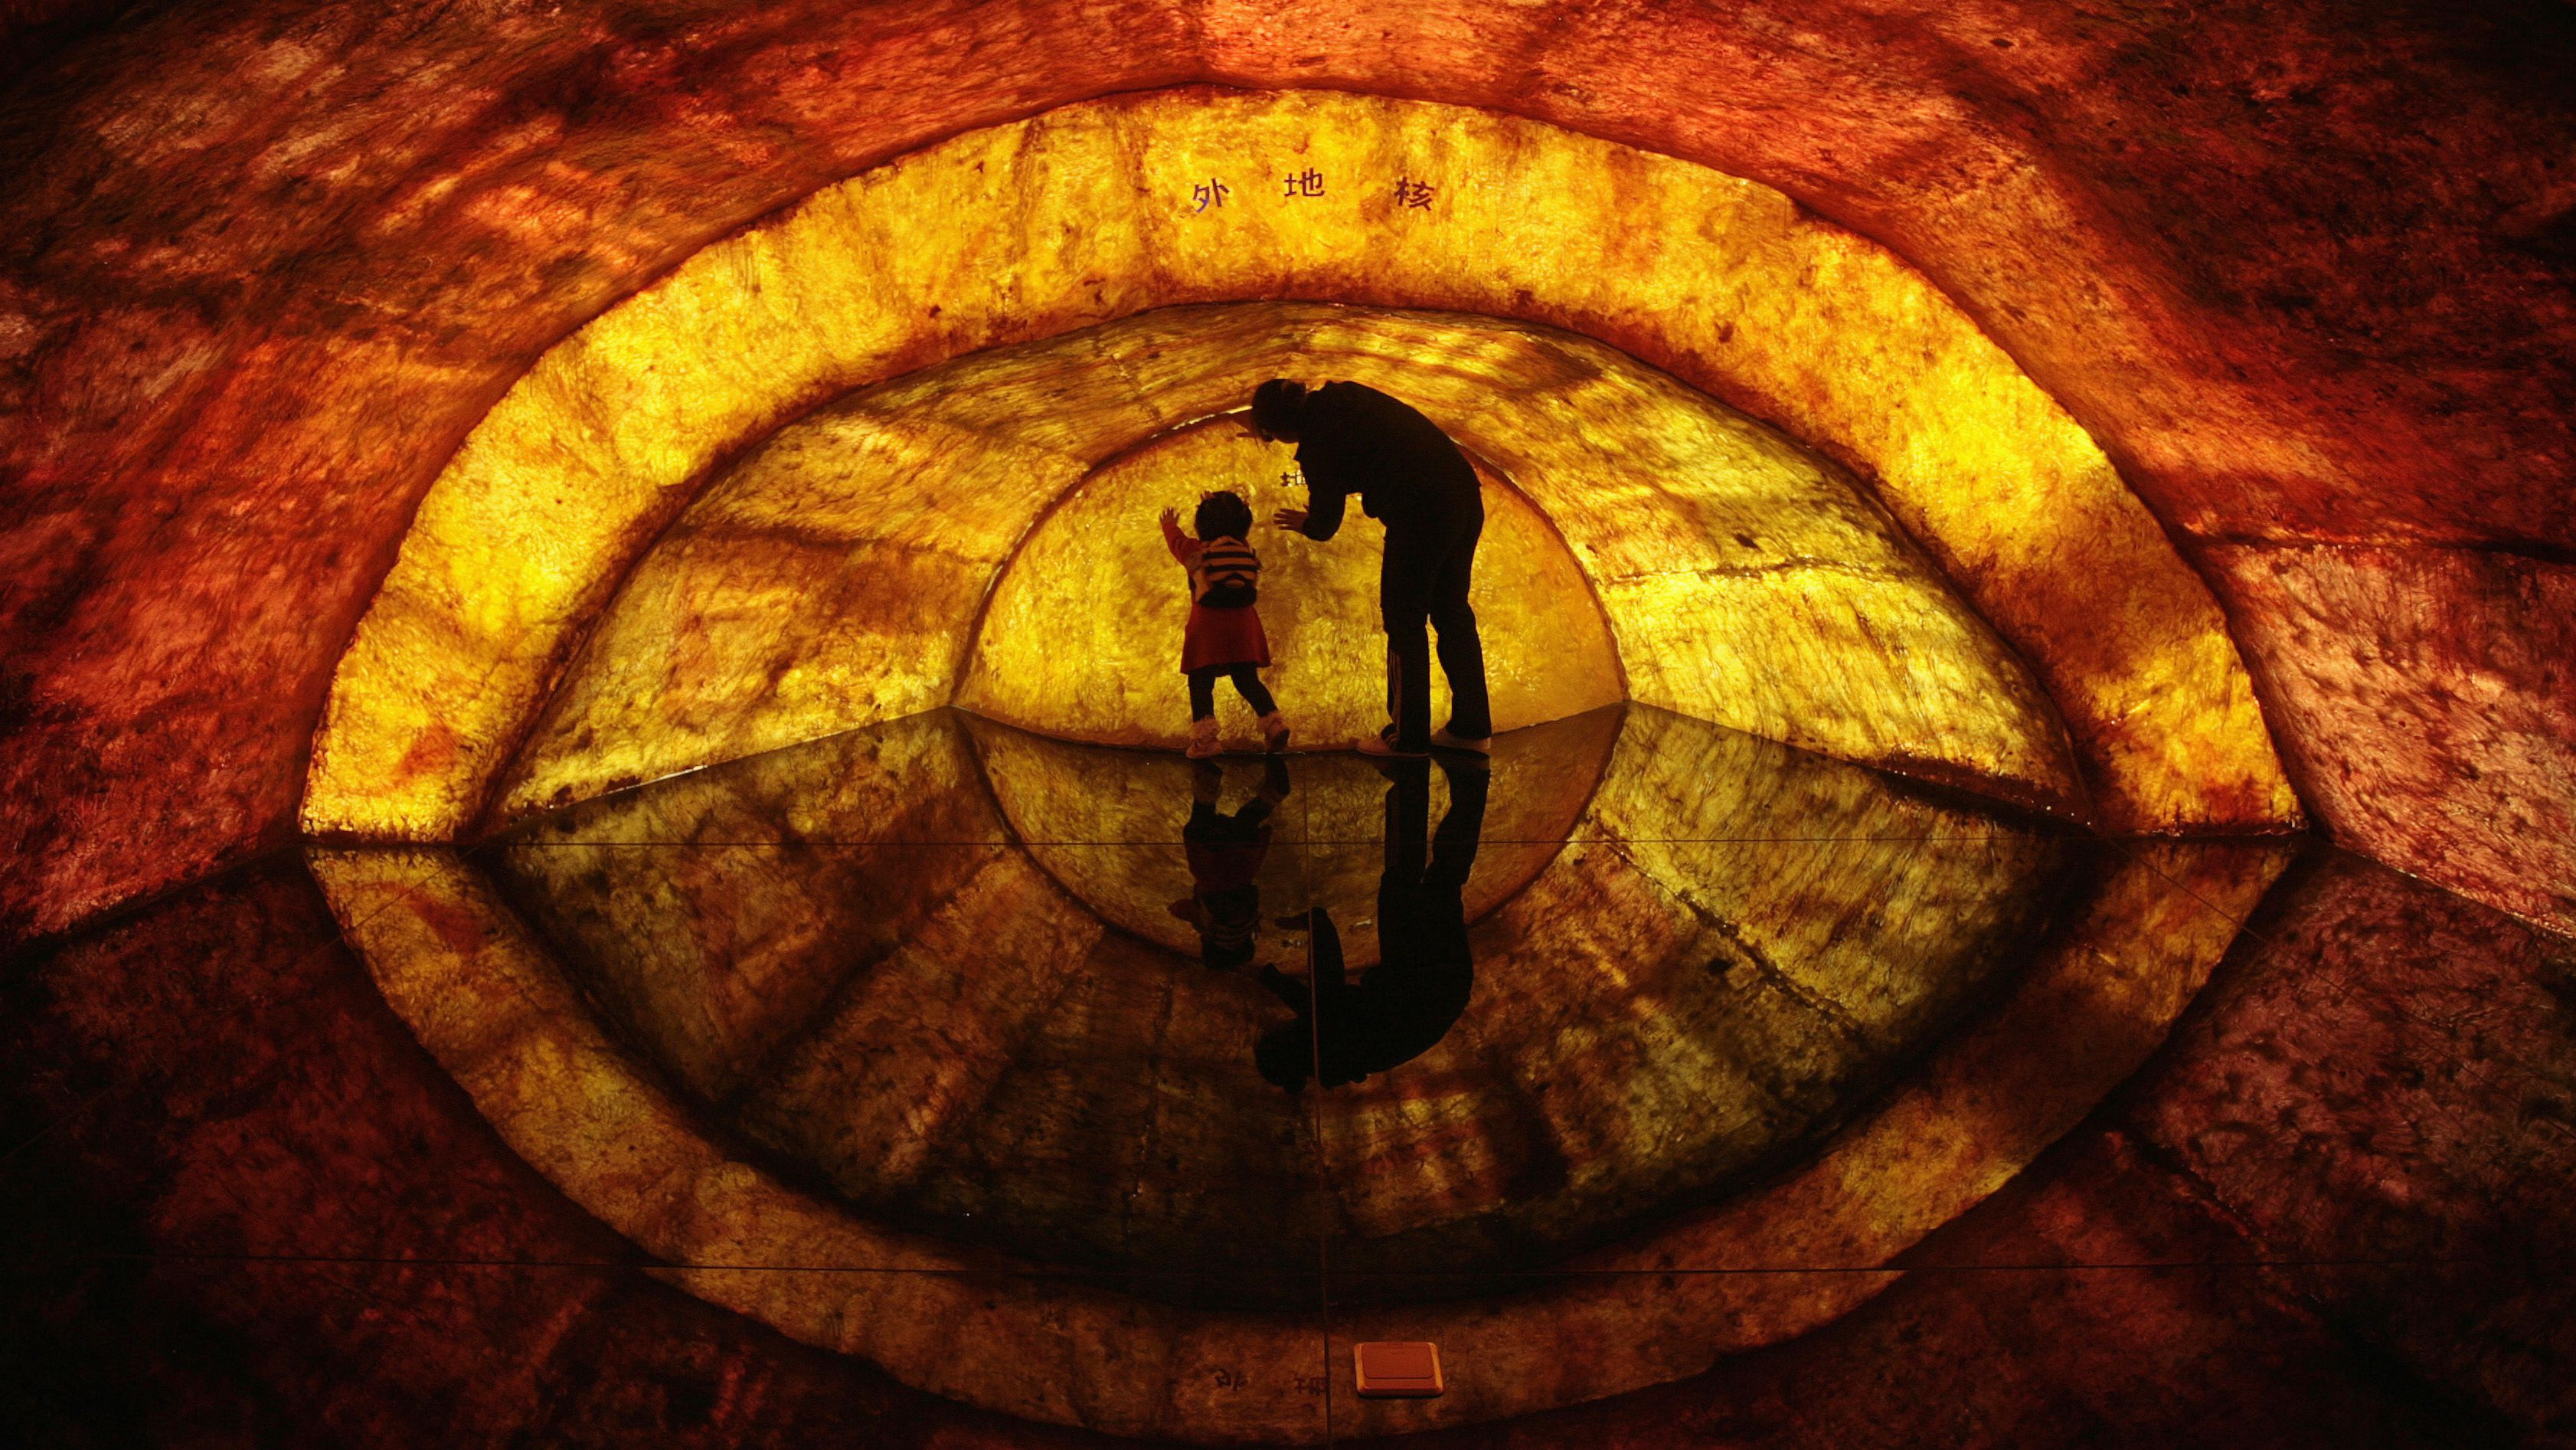 """A woman and her daughter touch a structural model of the earth's core at Nanjing Geological Museum in Nanjing, Jiangsu province April 22, 2011. Earth Day, which is celebrated on April 22 every year, marks an annual effort to raise public awareness about the environment and inspire actions to clean it up. The Chinese characters on the model read """"outer core"""". REUTERS/Sean Yong (CHINA - Tags: SOCIETY ANNIVERSARY ENVIRONMENT IMAGES OF THE DAY) - RTR2LHTC"""